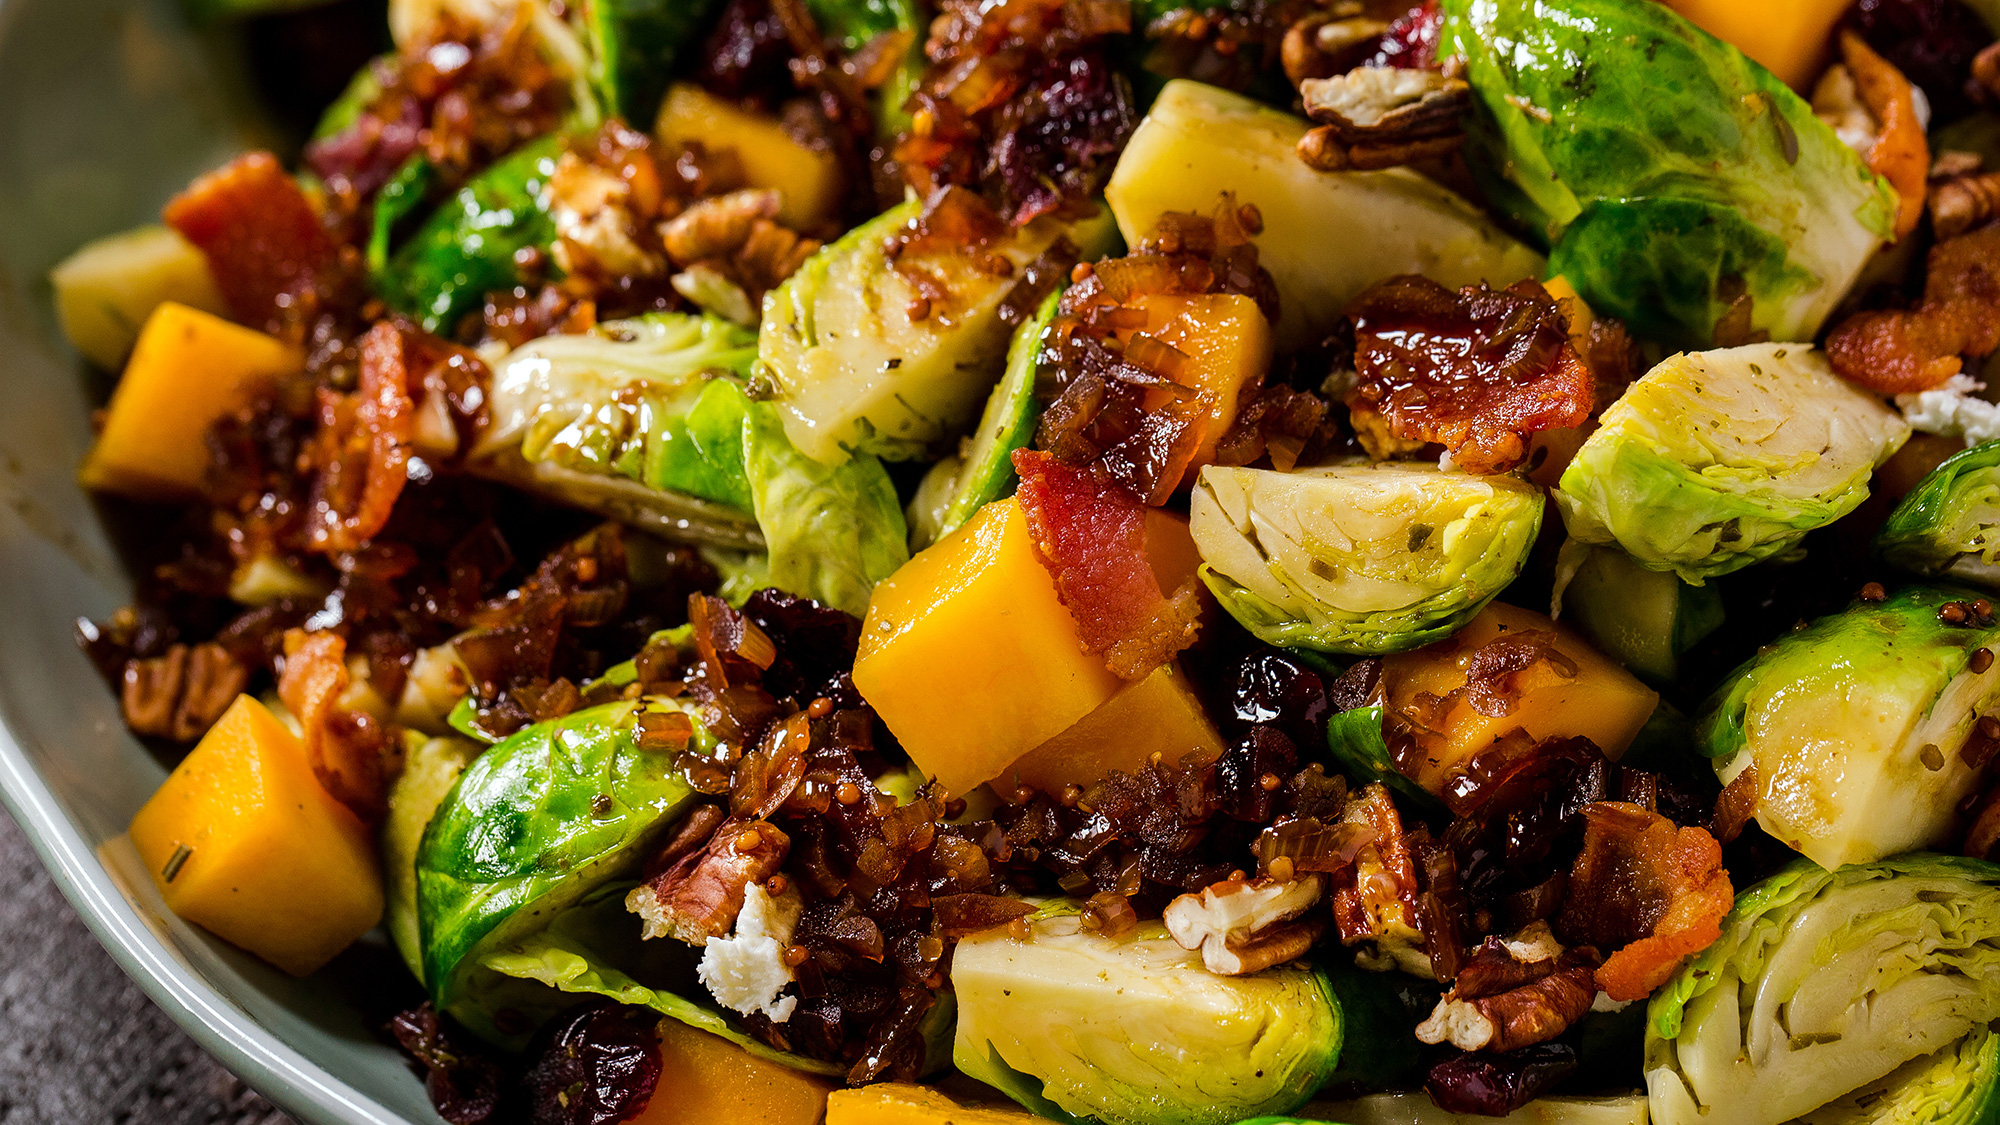 Kitchen Basics Autumn Brussels Sprout Salad with Warm Bacon Drizzle